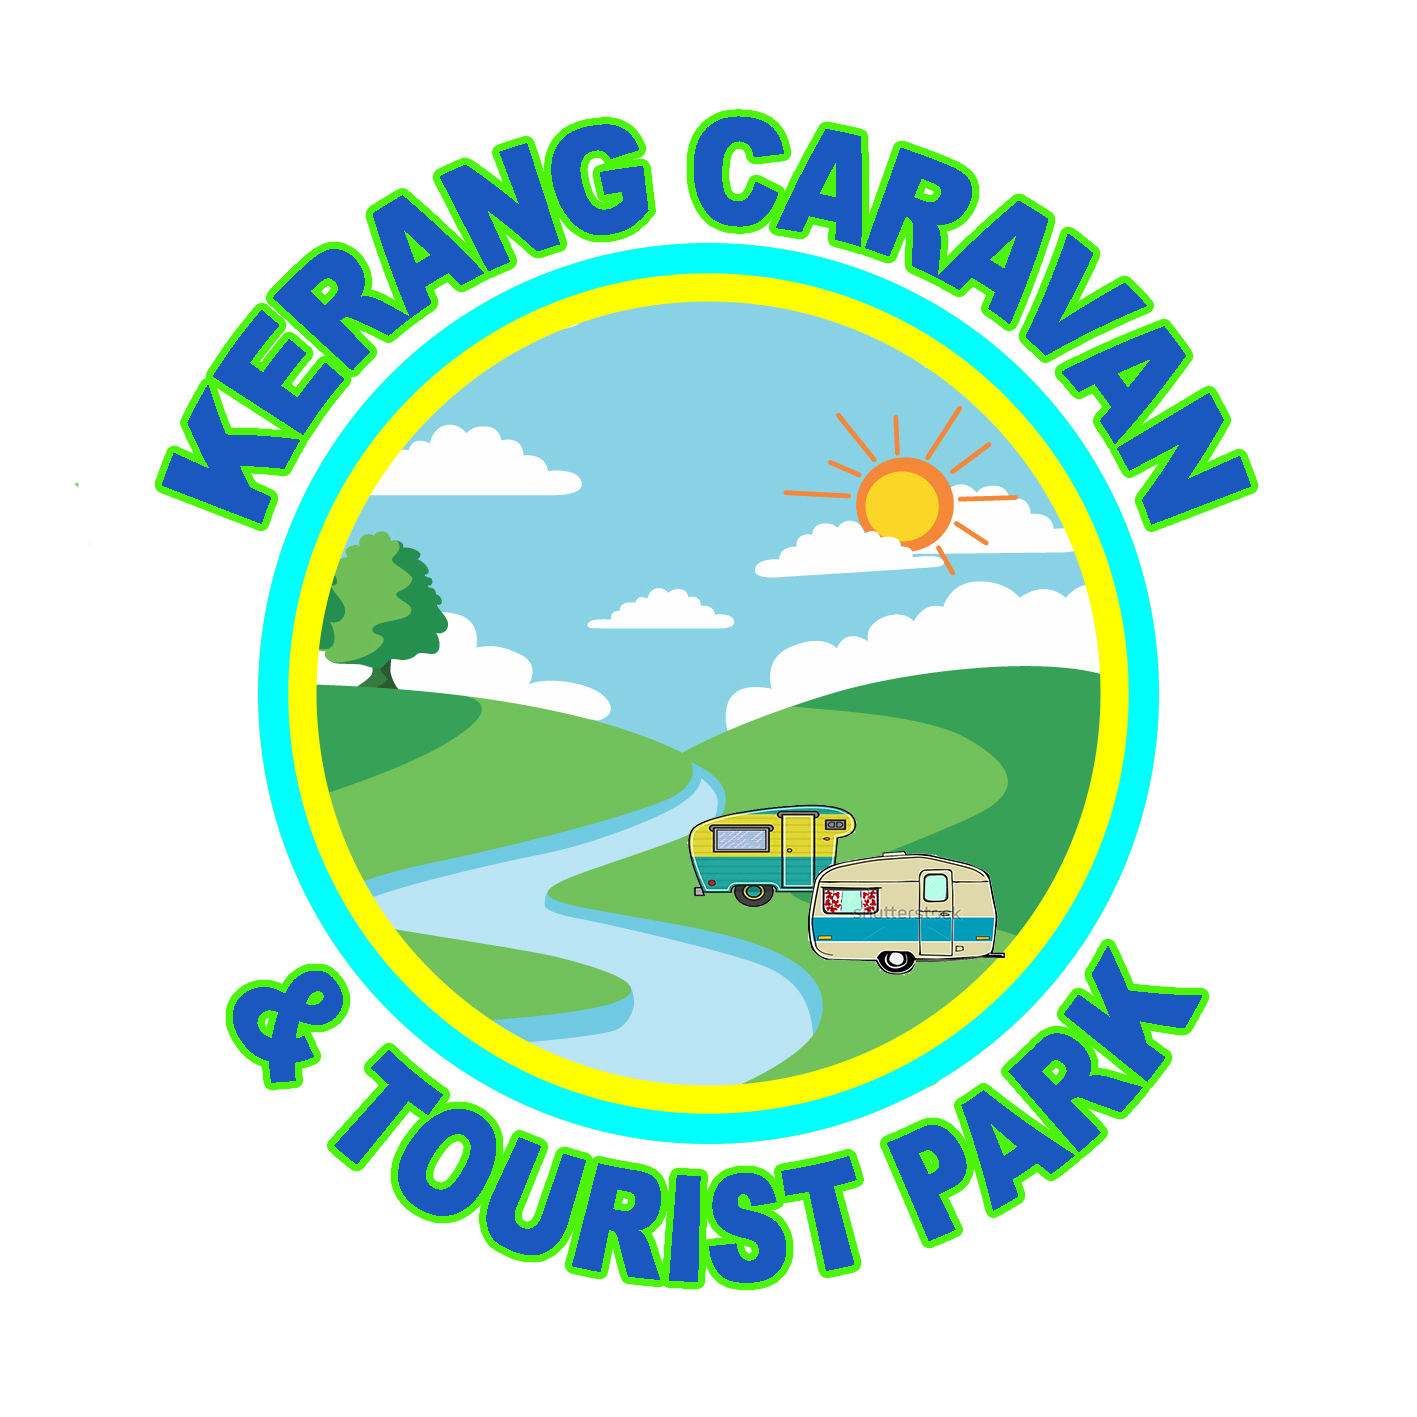 Kerang Caravan and Tourist Park